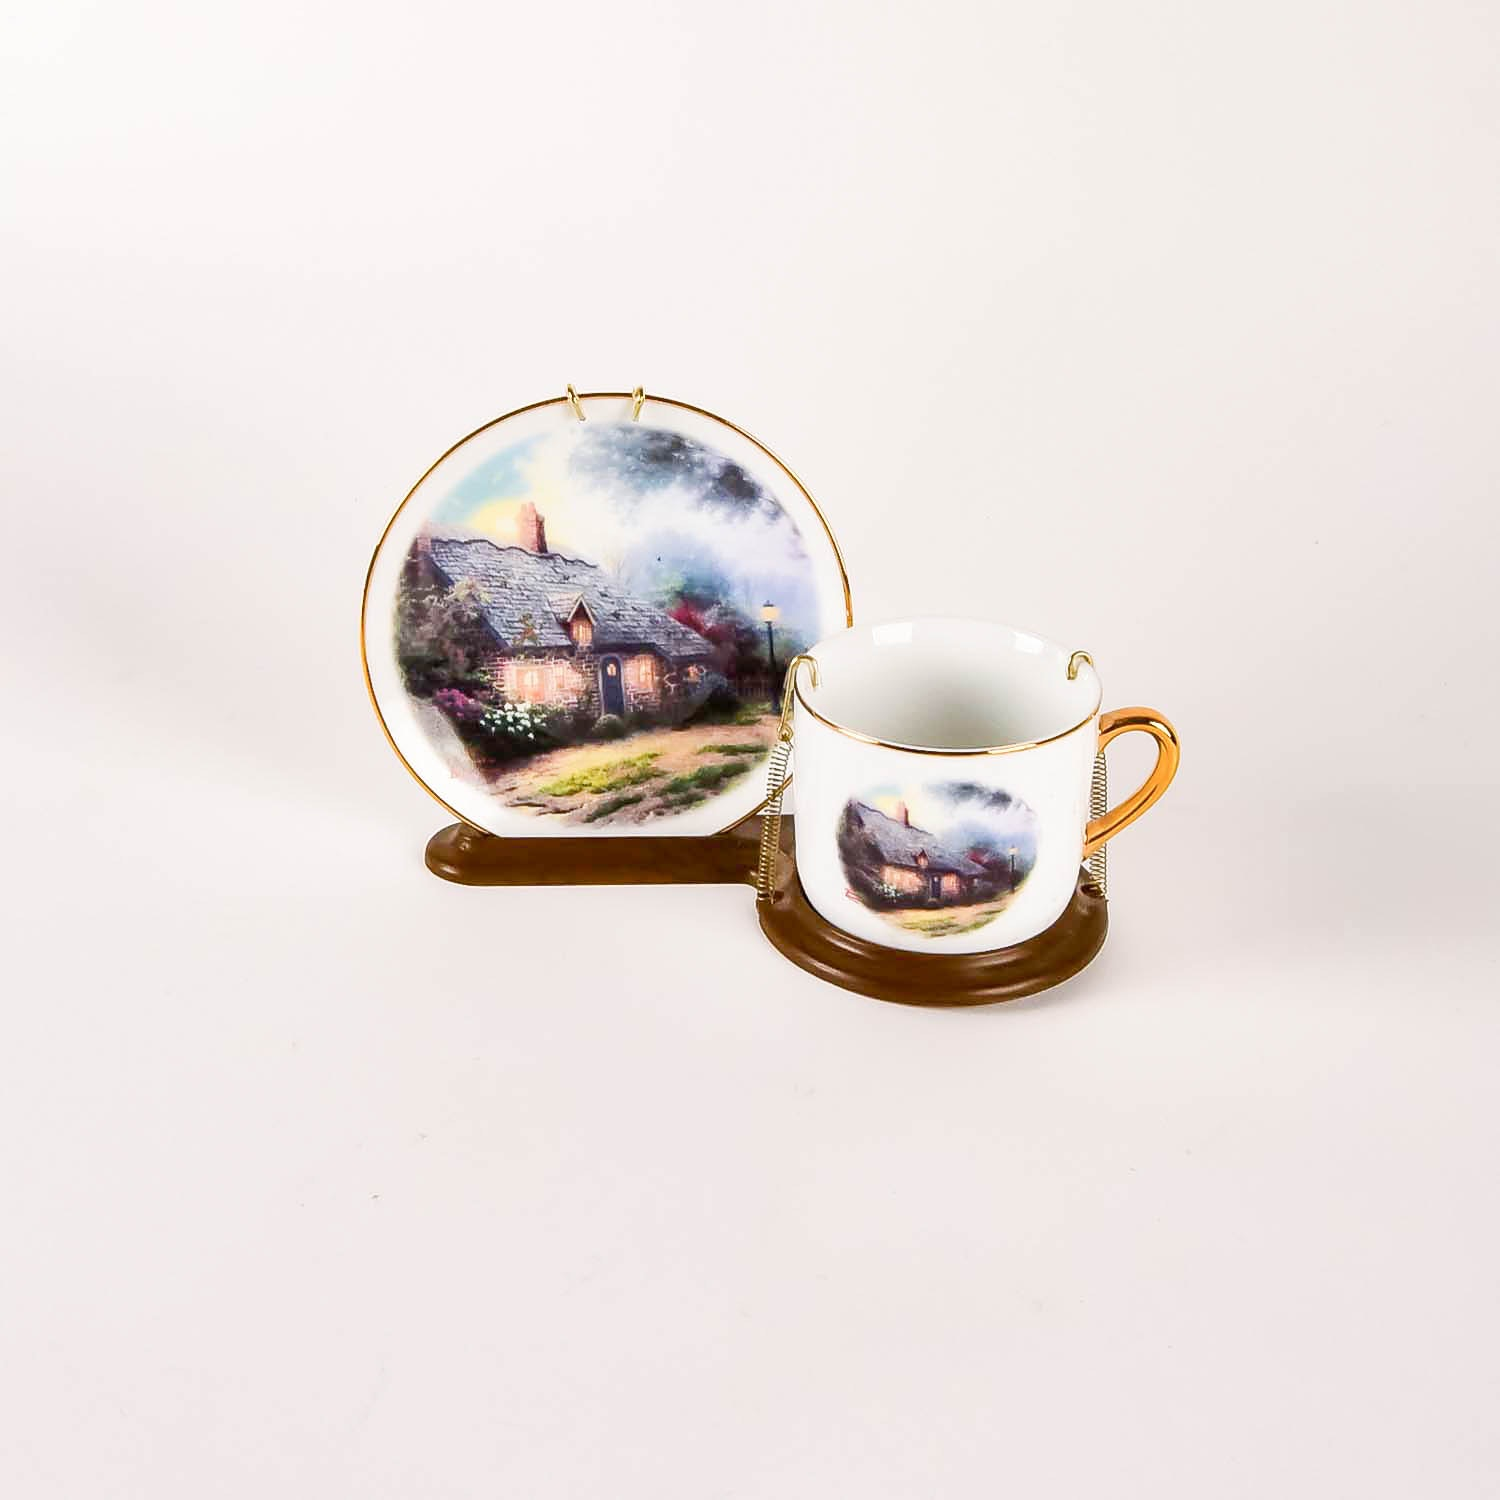 Thomas Kinkade Decorative Plate and Cup with Display Stand ... & Thomas Kinkade Decorative Plate and Cup with Display Stand : EBTH